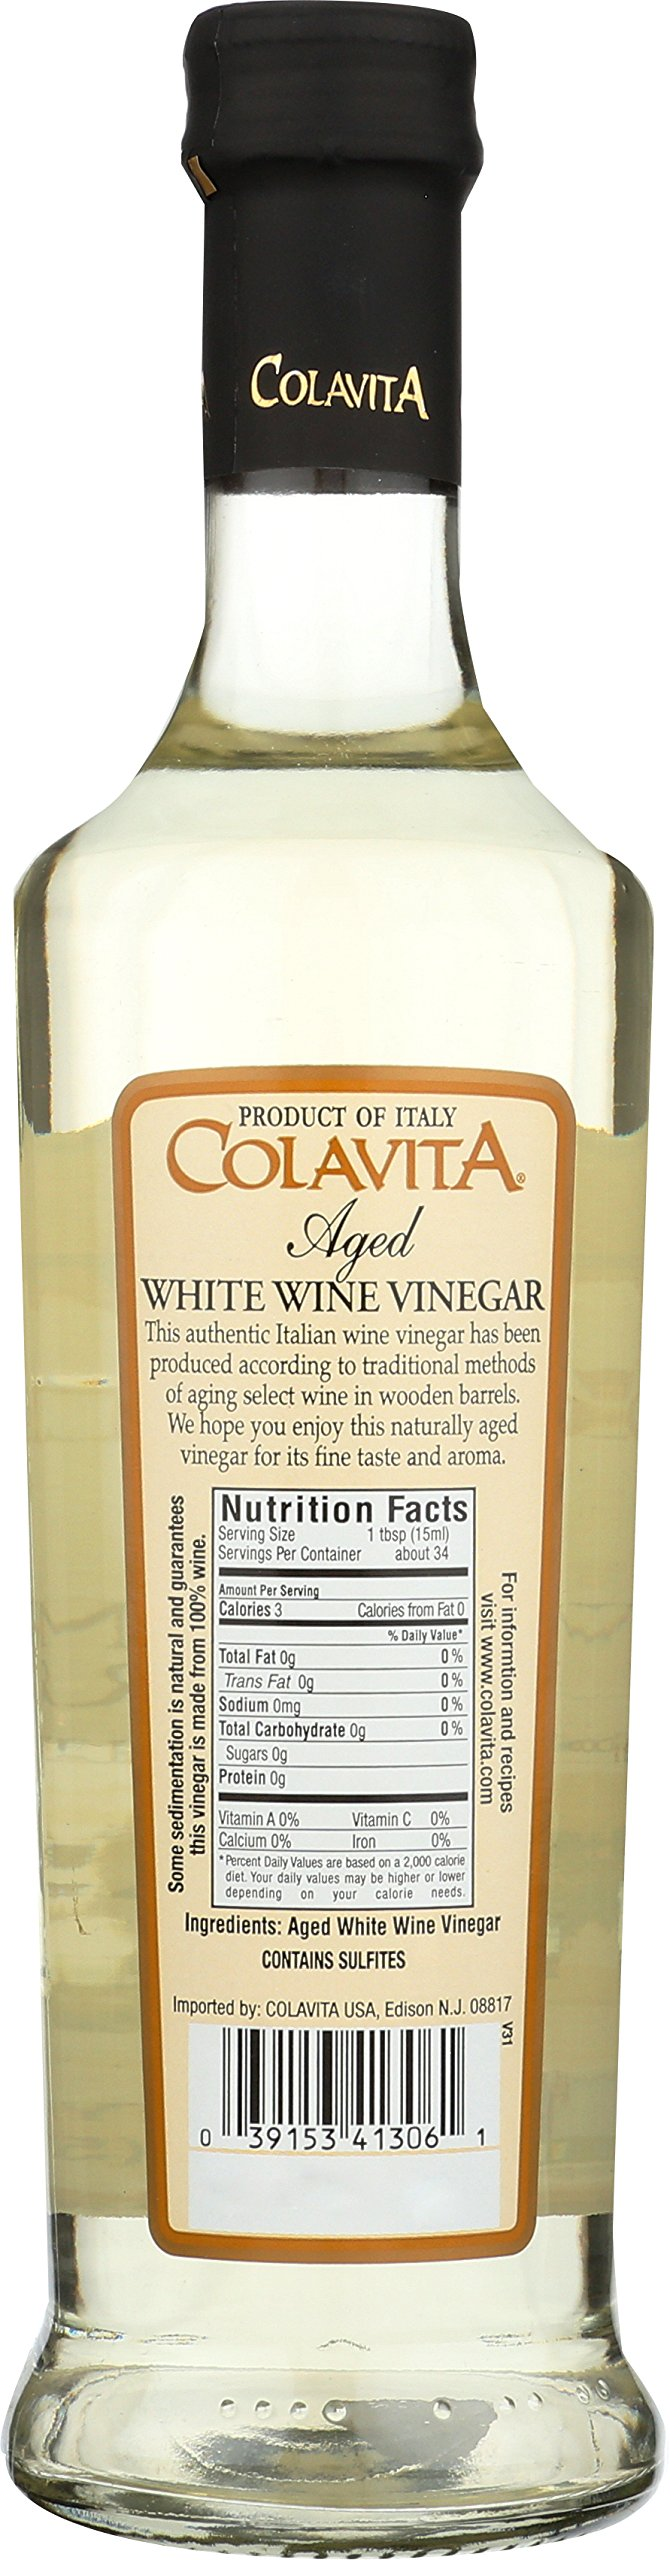 Colavita White Wine Vinegar, 17 oz by Colavita (Image #2)